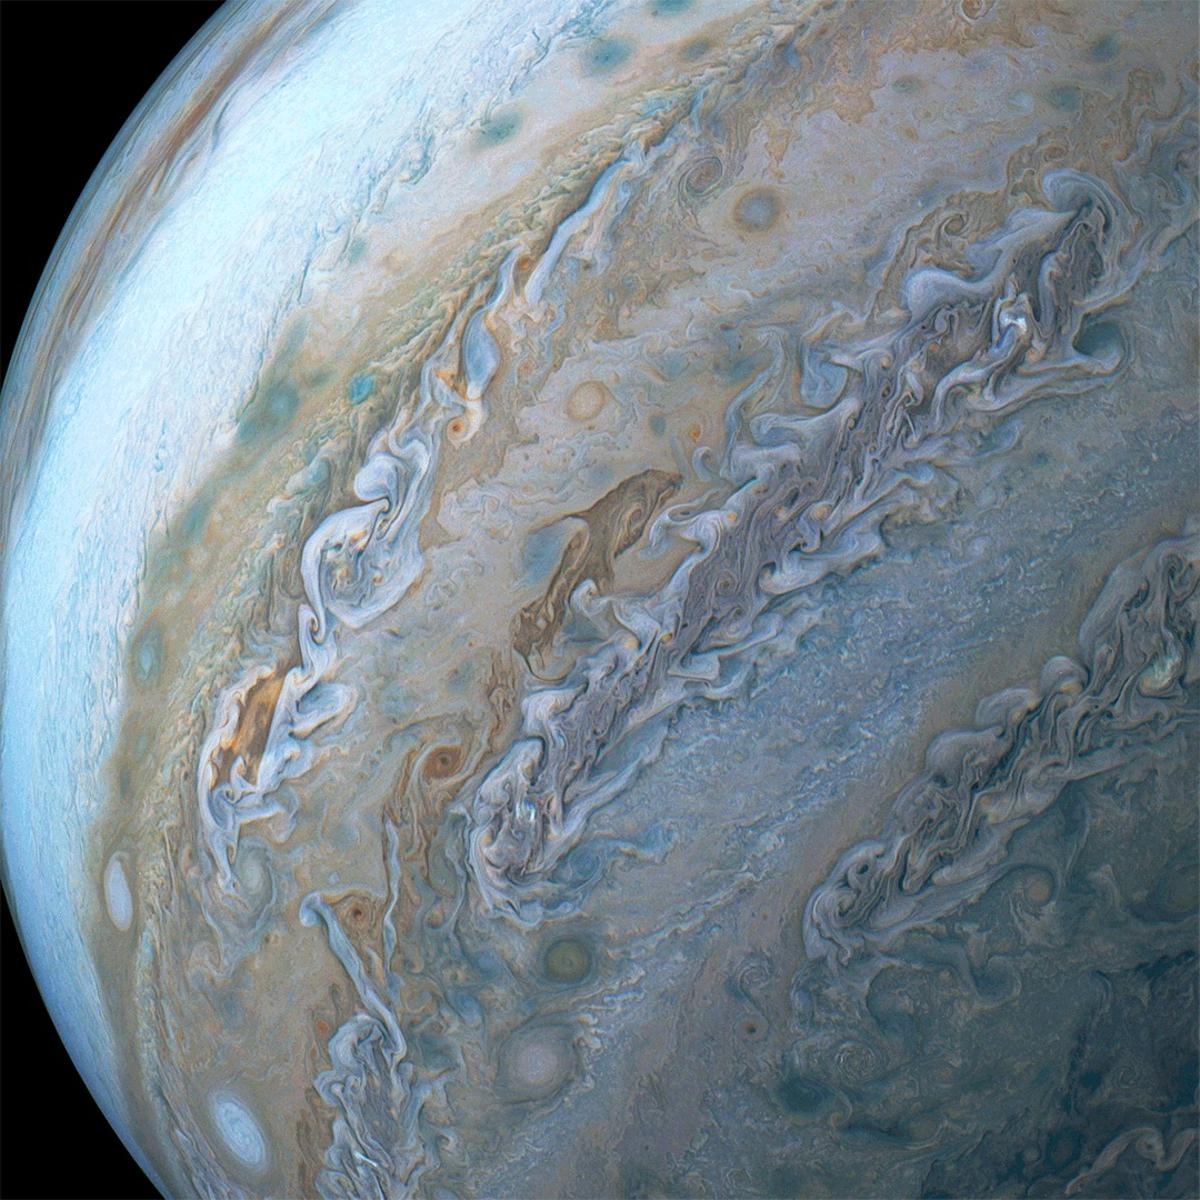 A dolphin in the clouds of Jupiter, among the best images of the massive planet captured in 2018